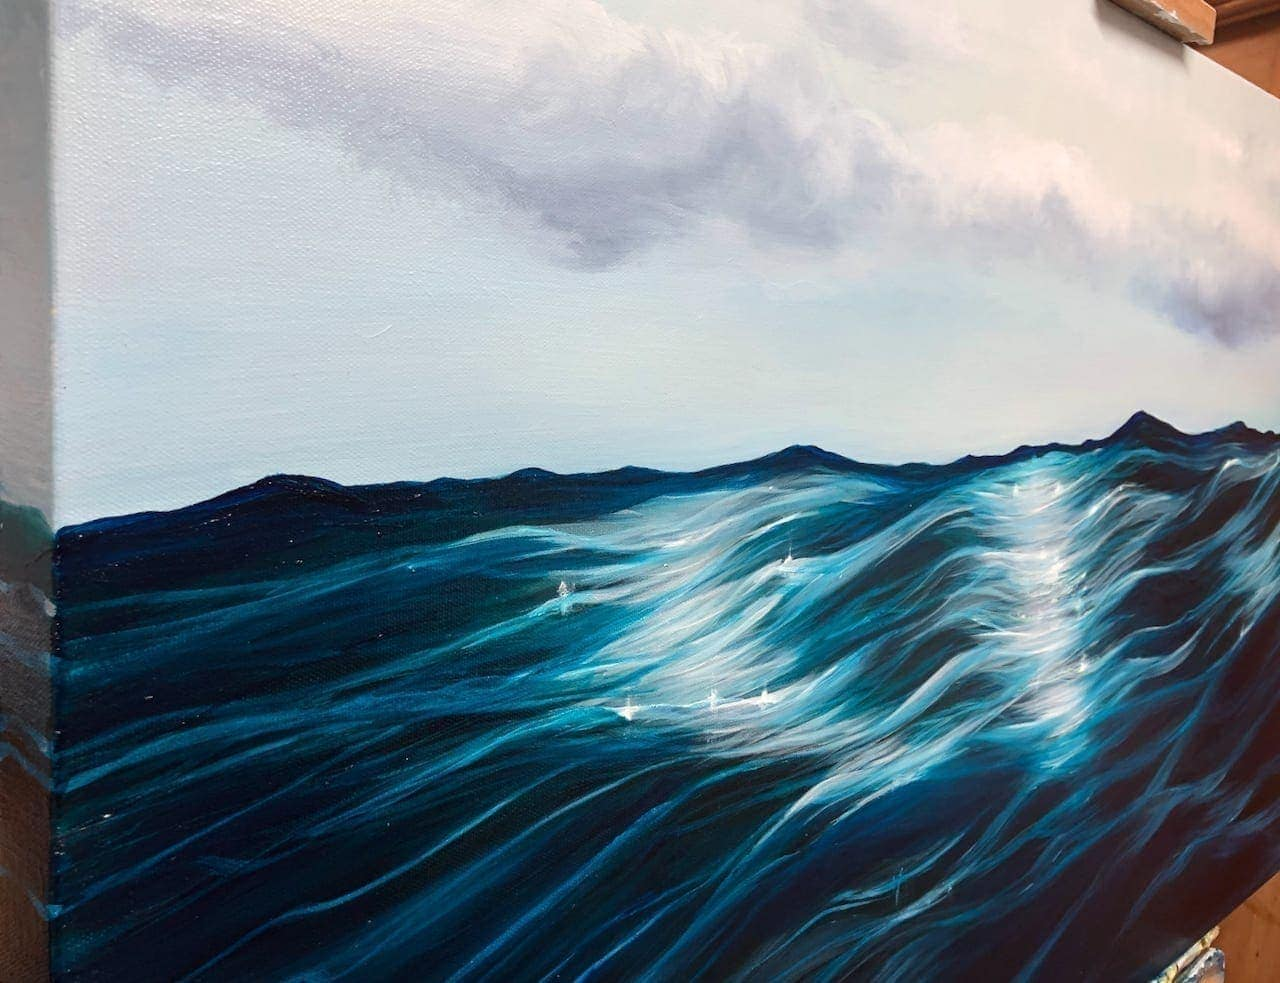 """""""Into the Blue"""" Original oil painting on canvas. Width 122cm x Height 61cm or 48 x 24 inches. Signed. Unframed. With a certificate of authenticity."""